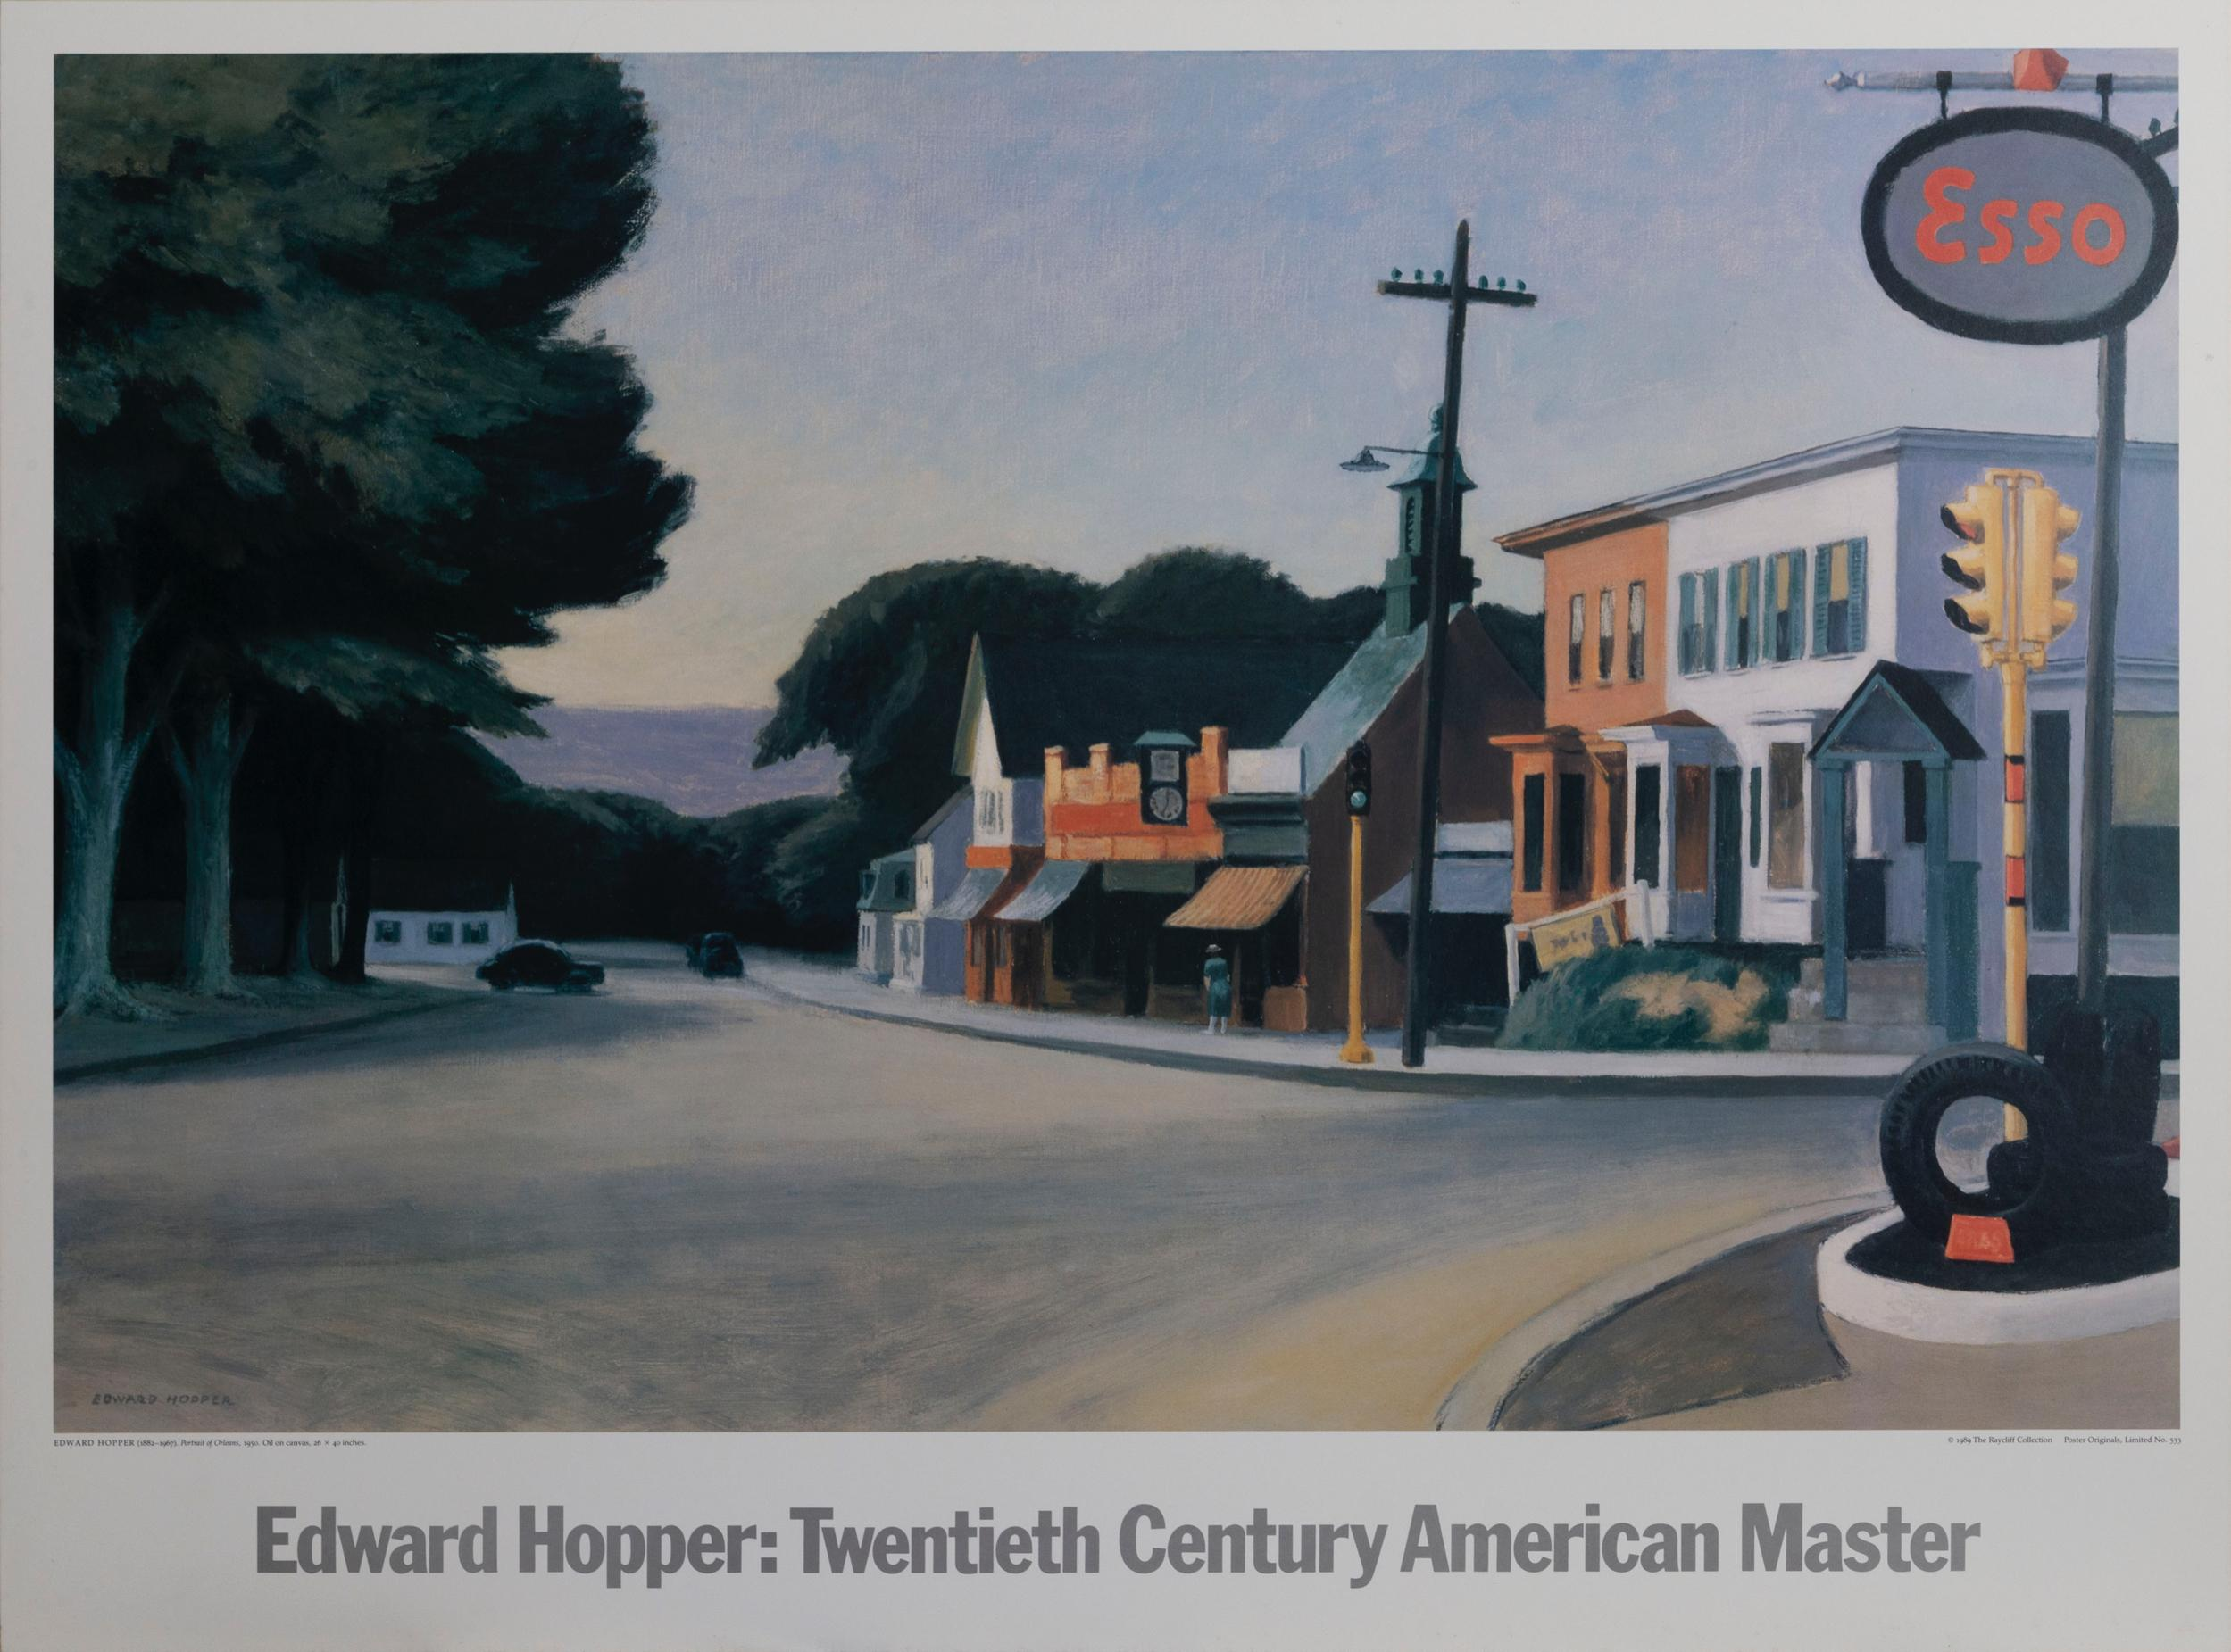 Edward Hopper, Portrait of Orleans, Poster on board